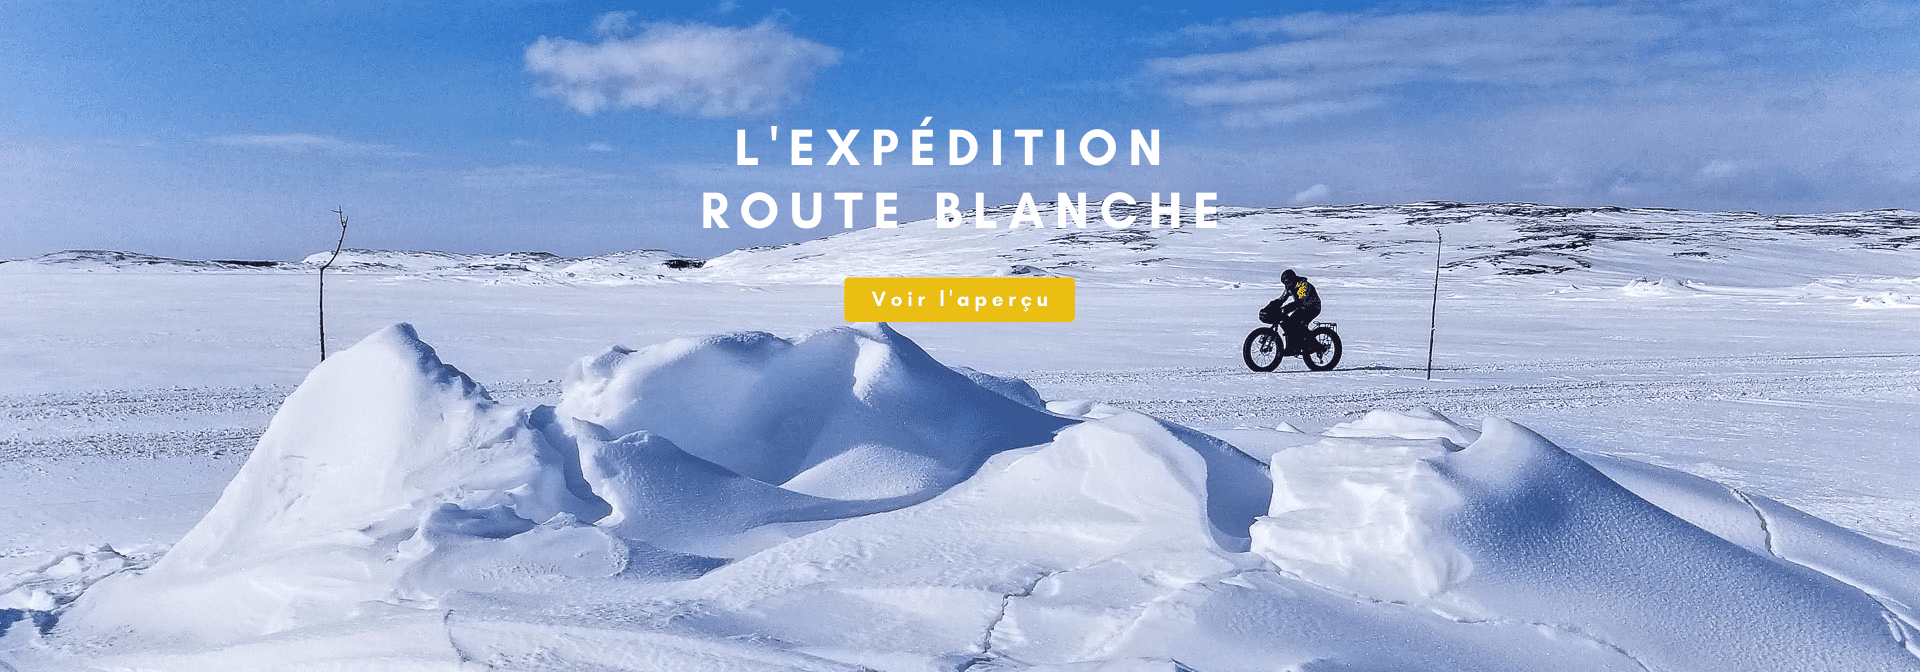 expédition-route-blanche-panorama